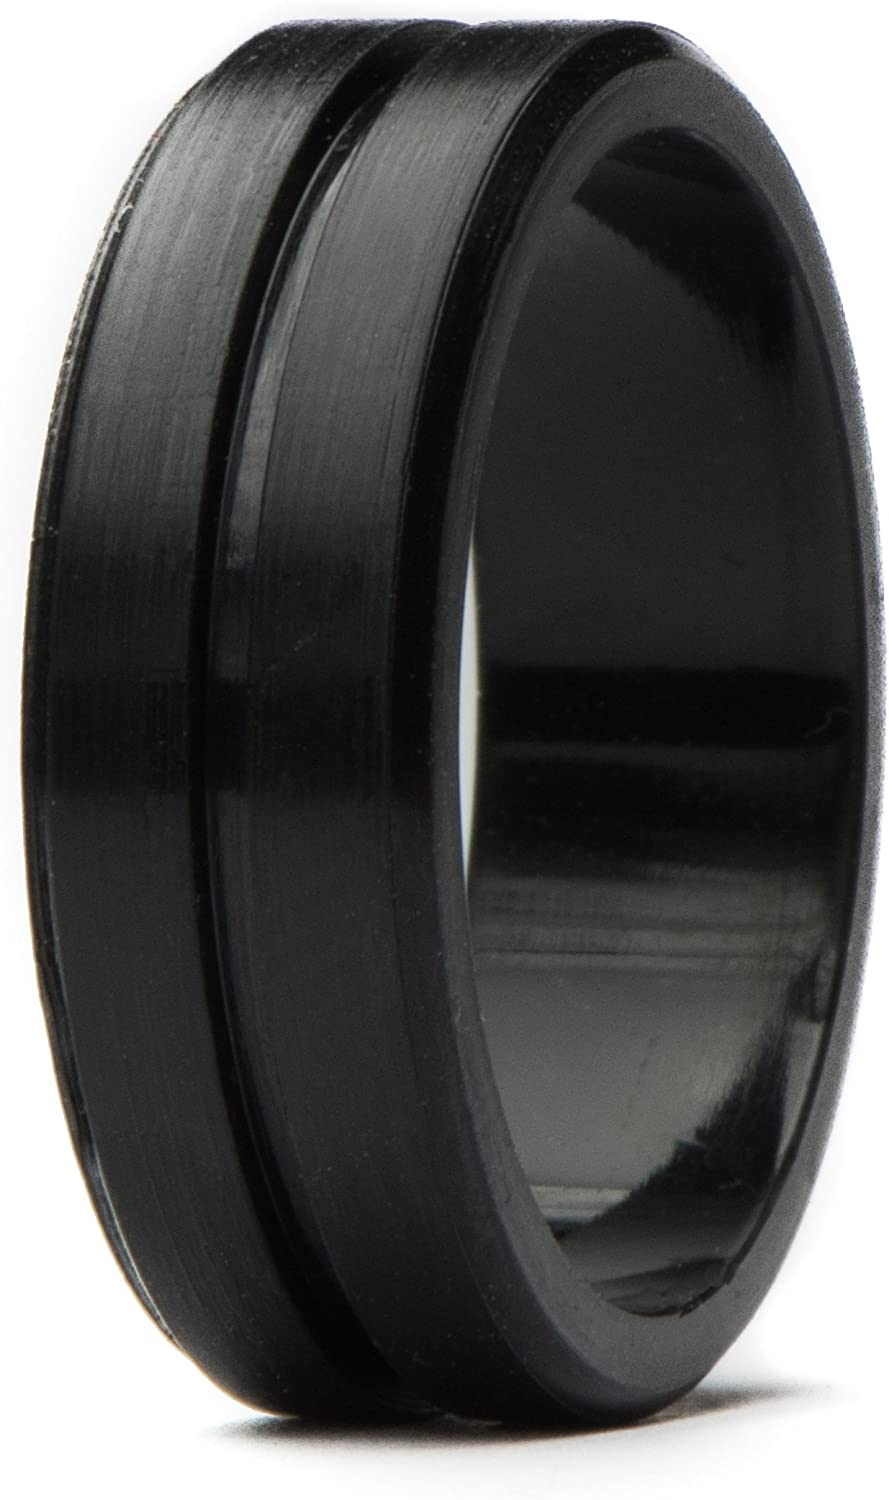 Unii Silicone Wedding Ring | Safety Rubber Wedding Band | Athletic Ring for Active Men | Thin Groove Ring 7mm Wide | Best Alternative for Work, Mechanics, Sports, Workout Ring